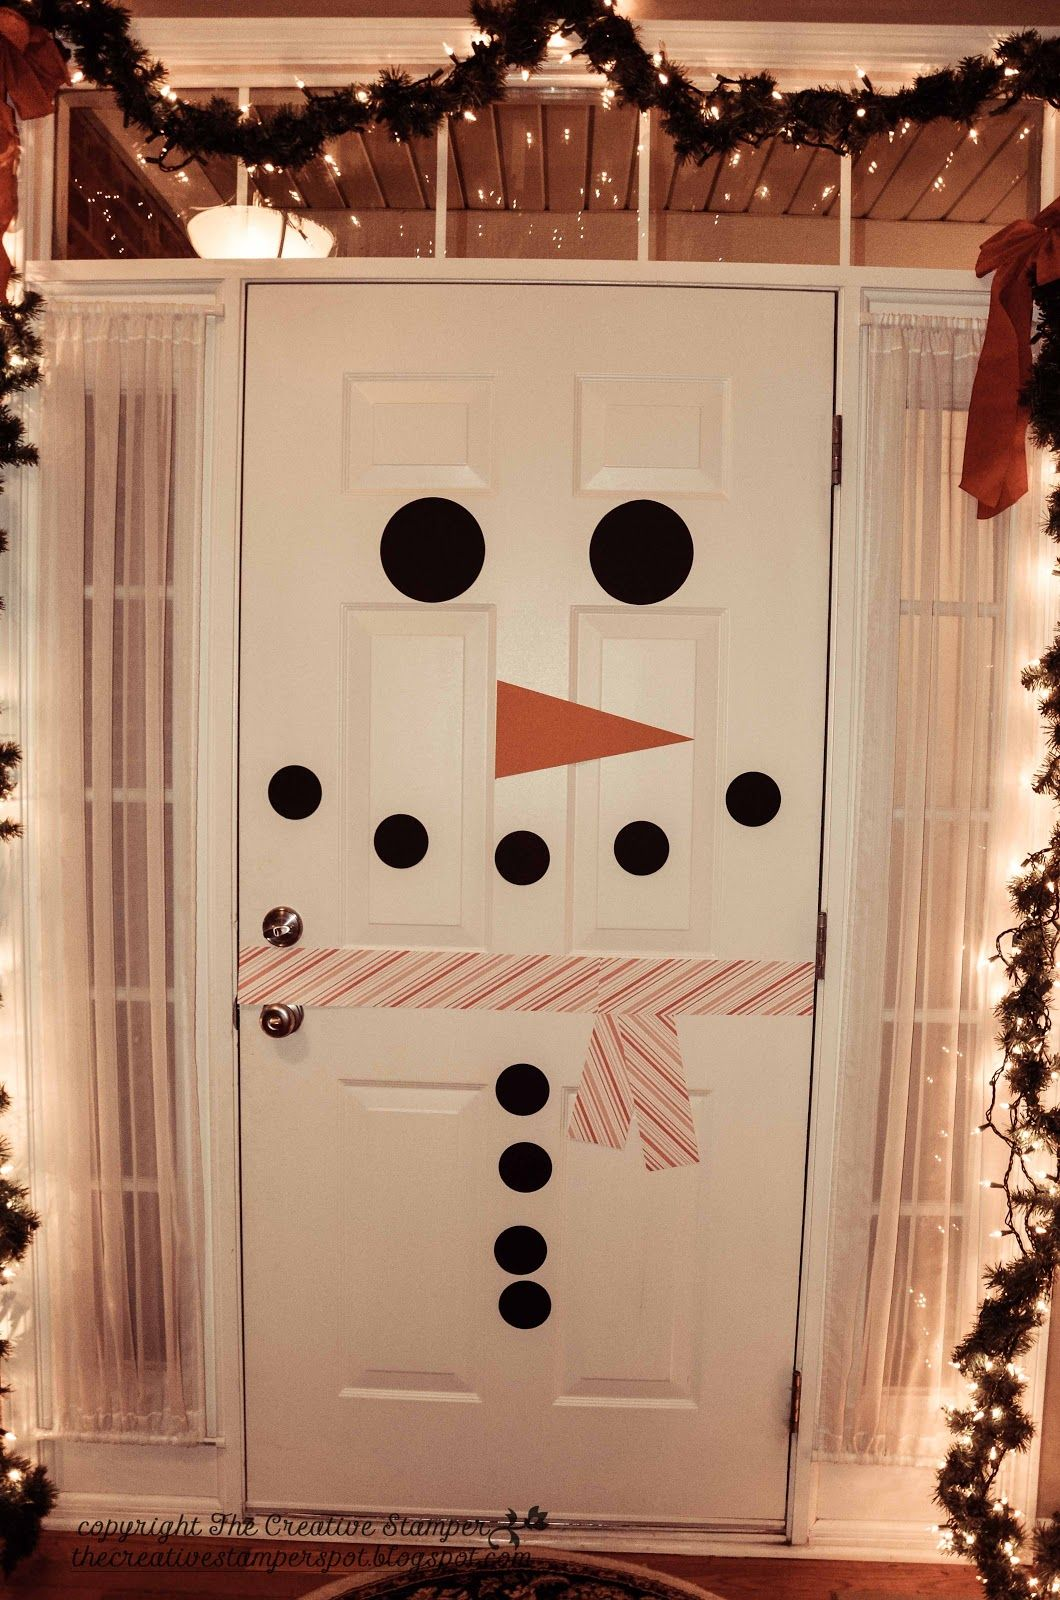 Take advantage of your all-white door by turning it into a paper snowman with simple paper cut-outs. Get the tutorial at The Creative St&er Spot & 30 Festive Christmas Door Decorations | Snowman Tutorials and Creative